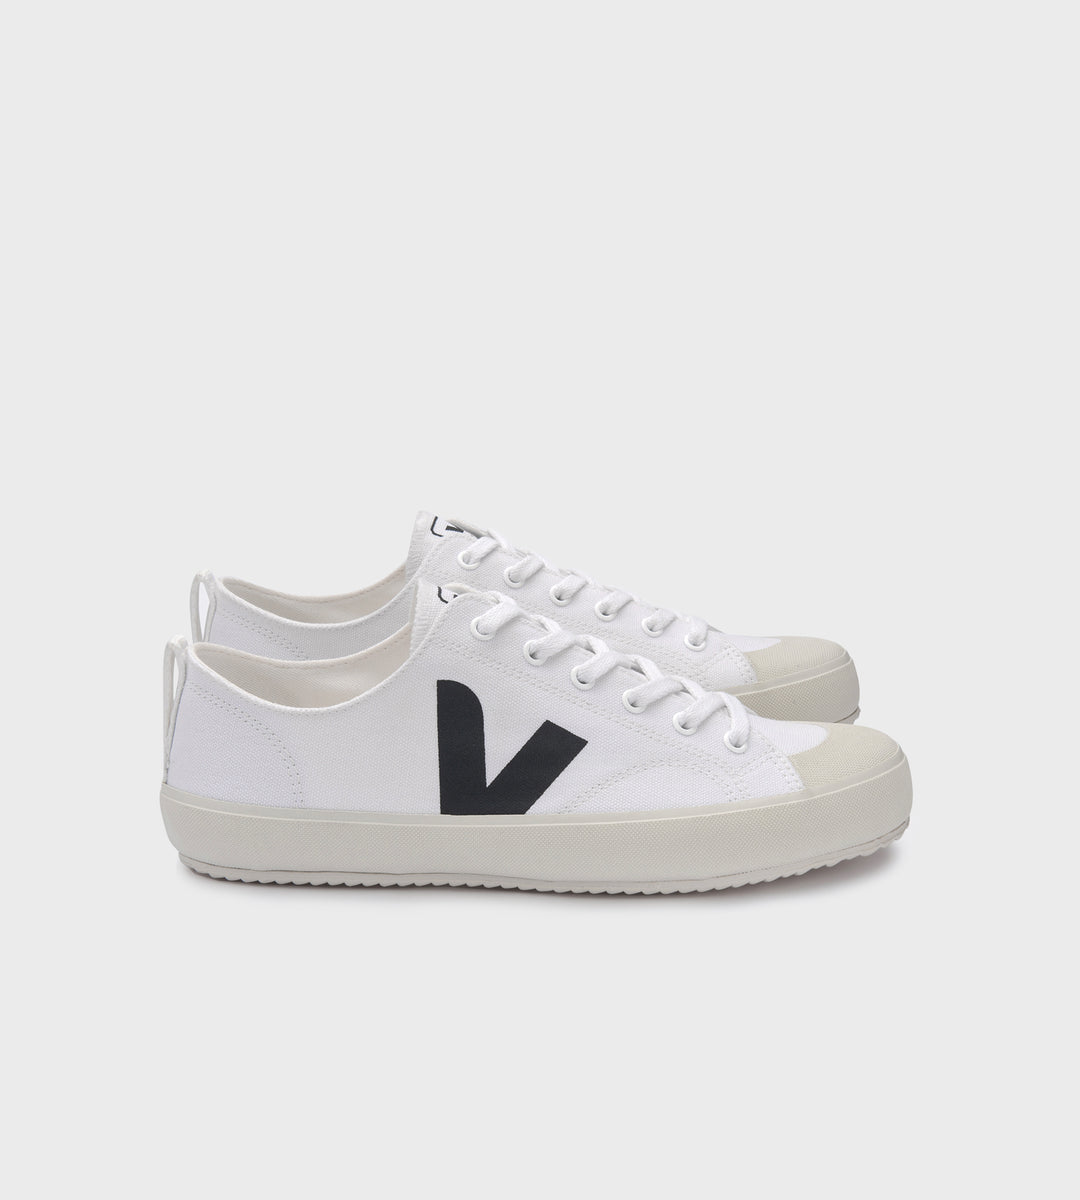 Veja | Nova Canvas Sneaker | White Black